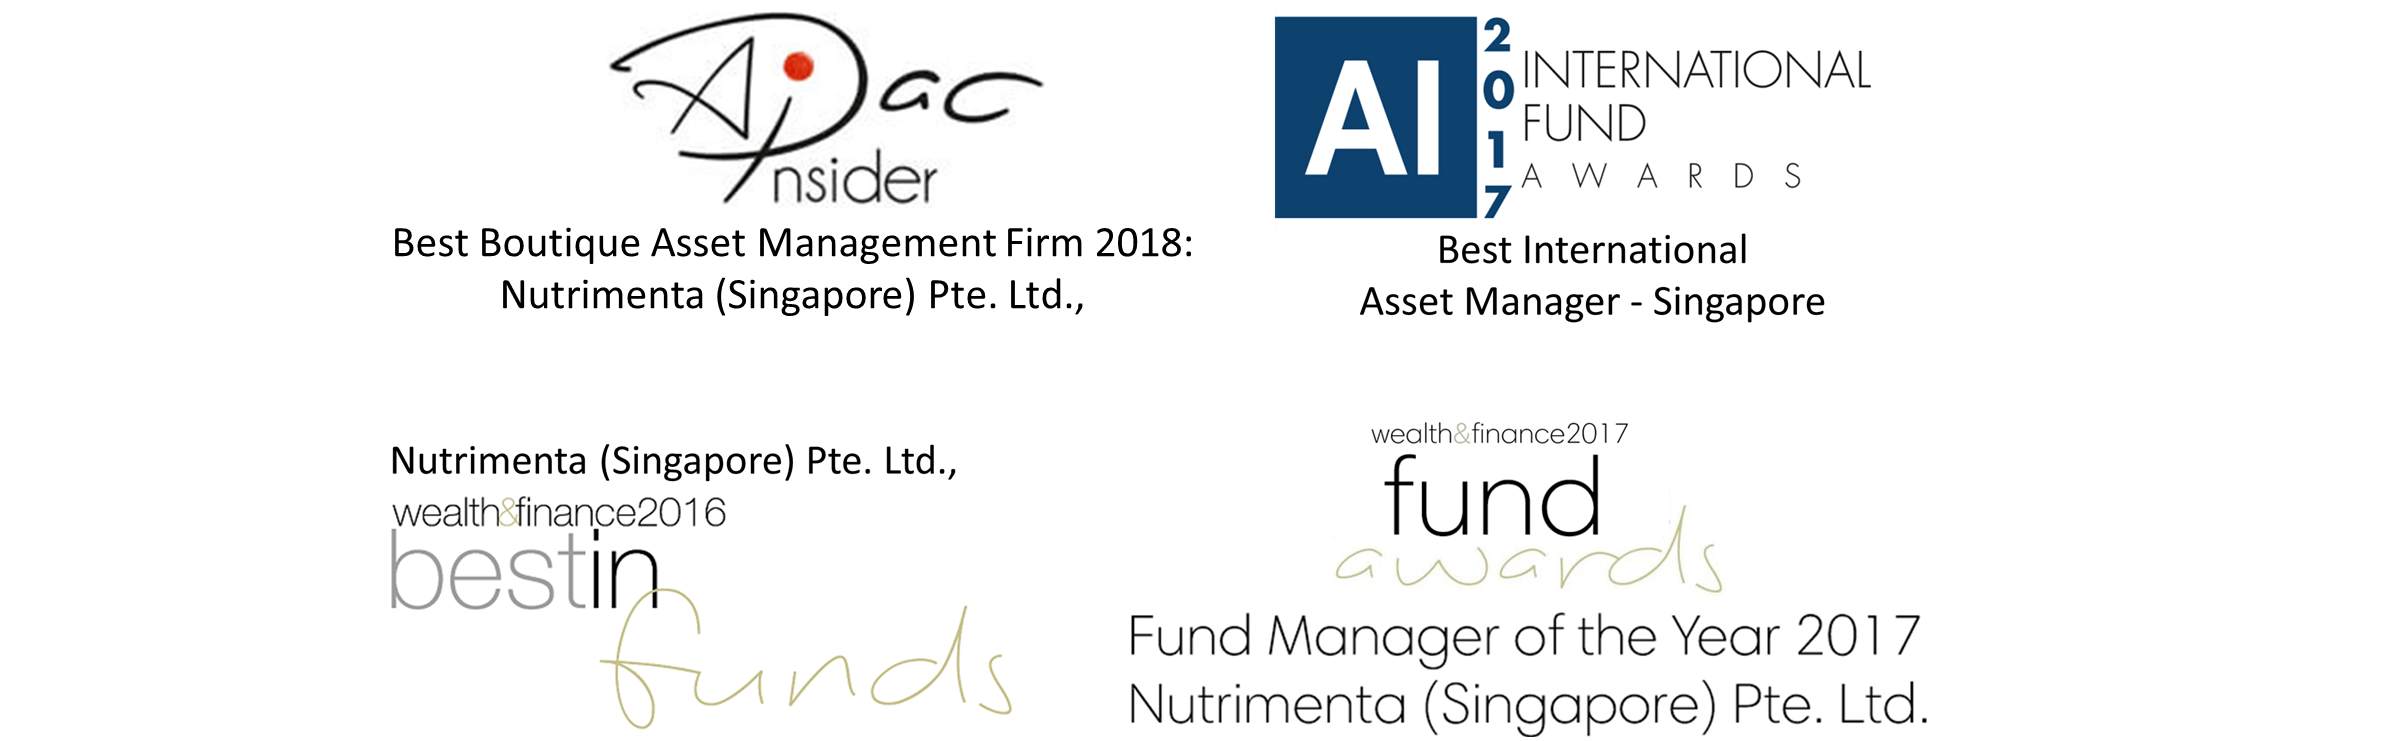 AI 2017 International Fund Awards: Best International Asset Manager- Singapore; and Nutrimenta (Singapore) Pte. Ltd. Wealth and FInance 2016 Best in Funds